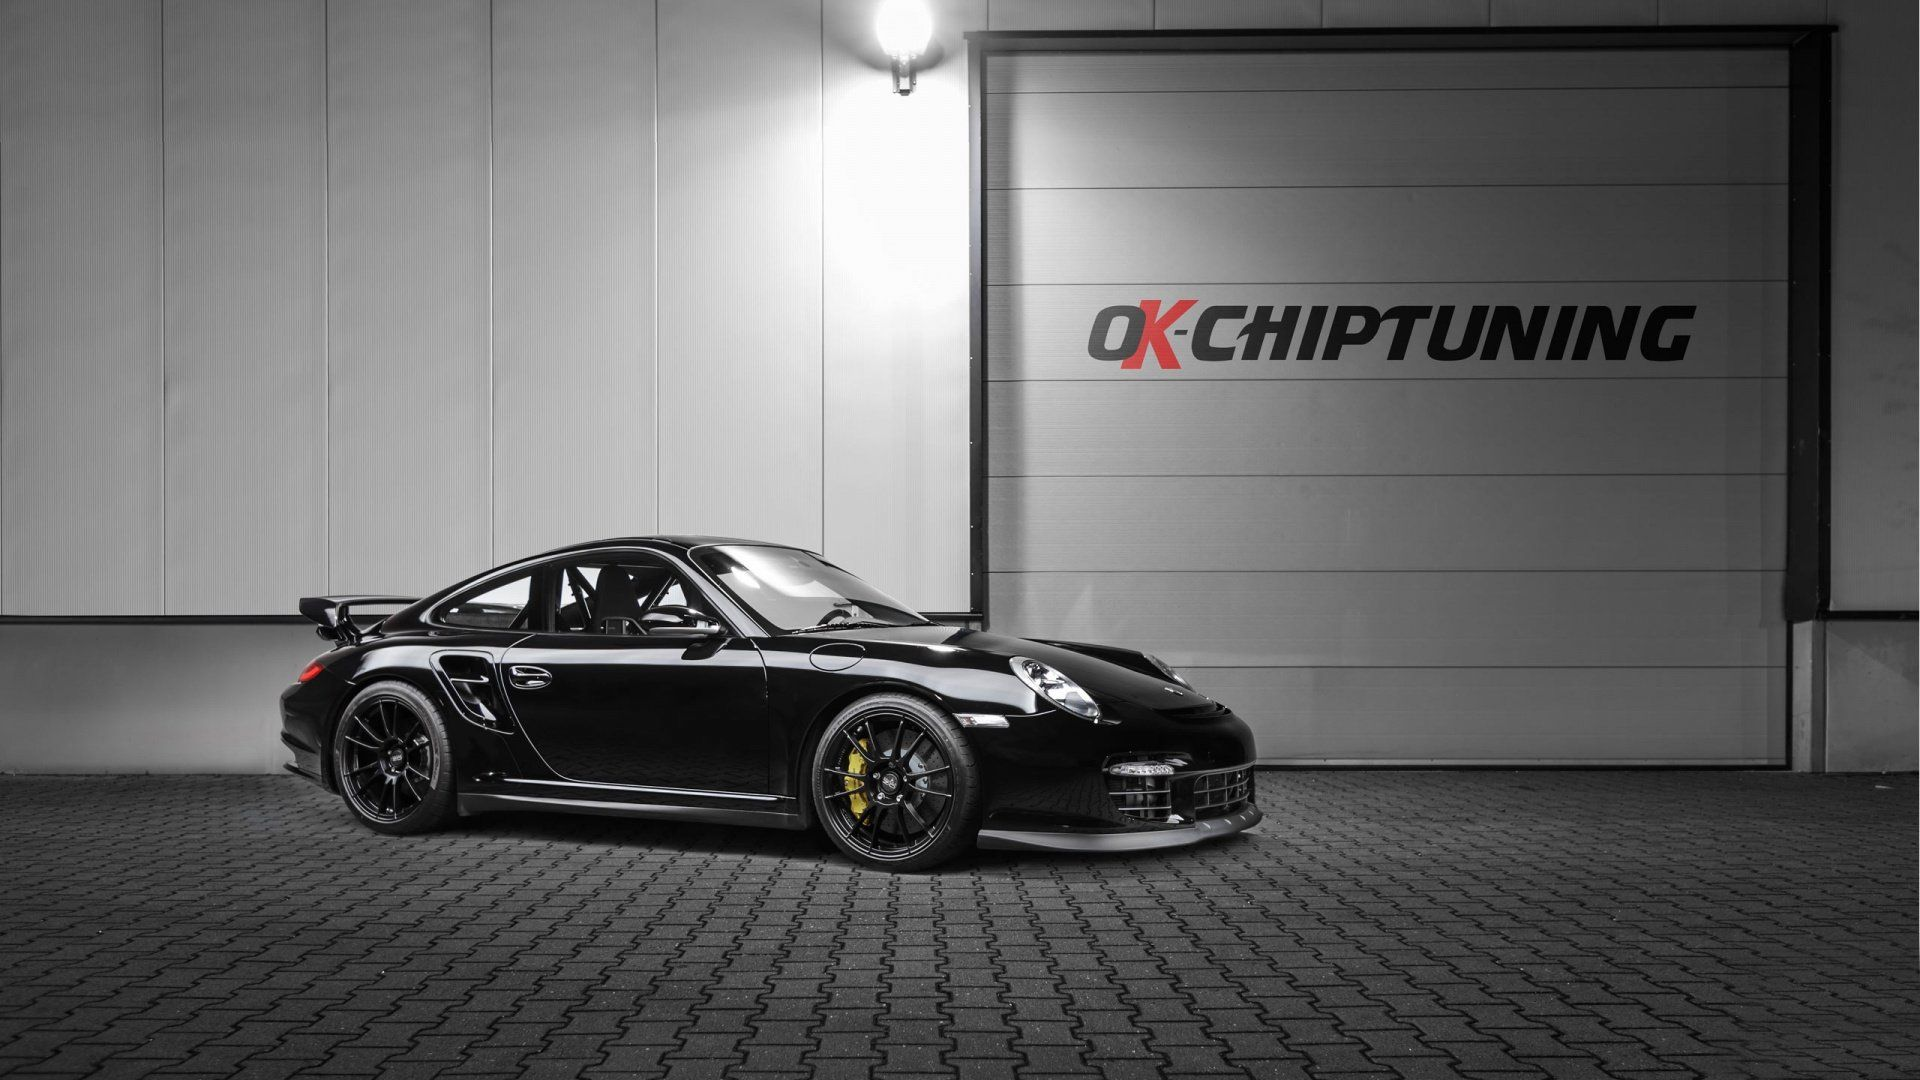 black 2015 porsche 911 turbo s wallpaper - Porsche 911 2015 Black